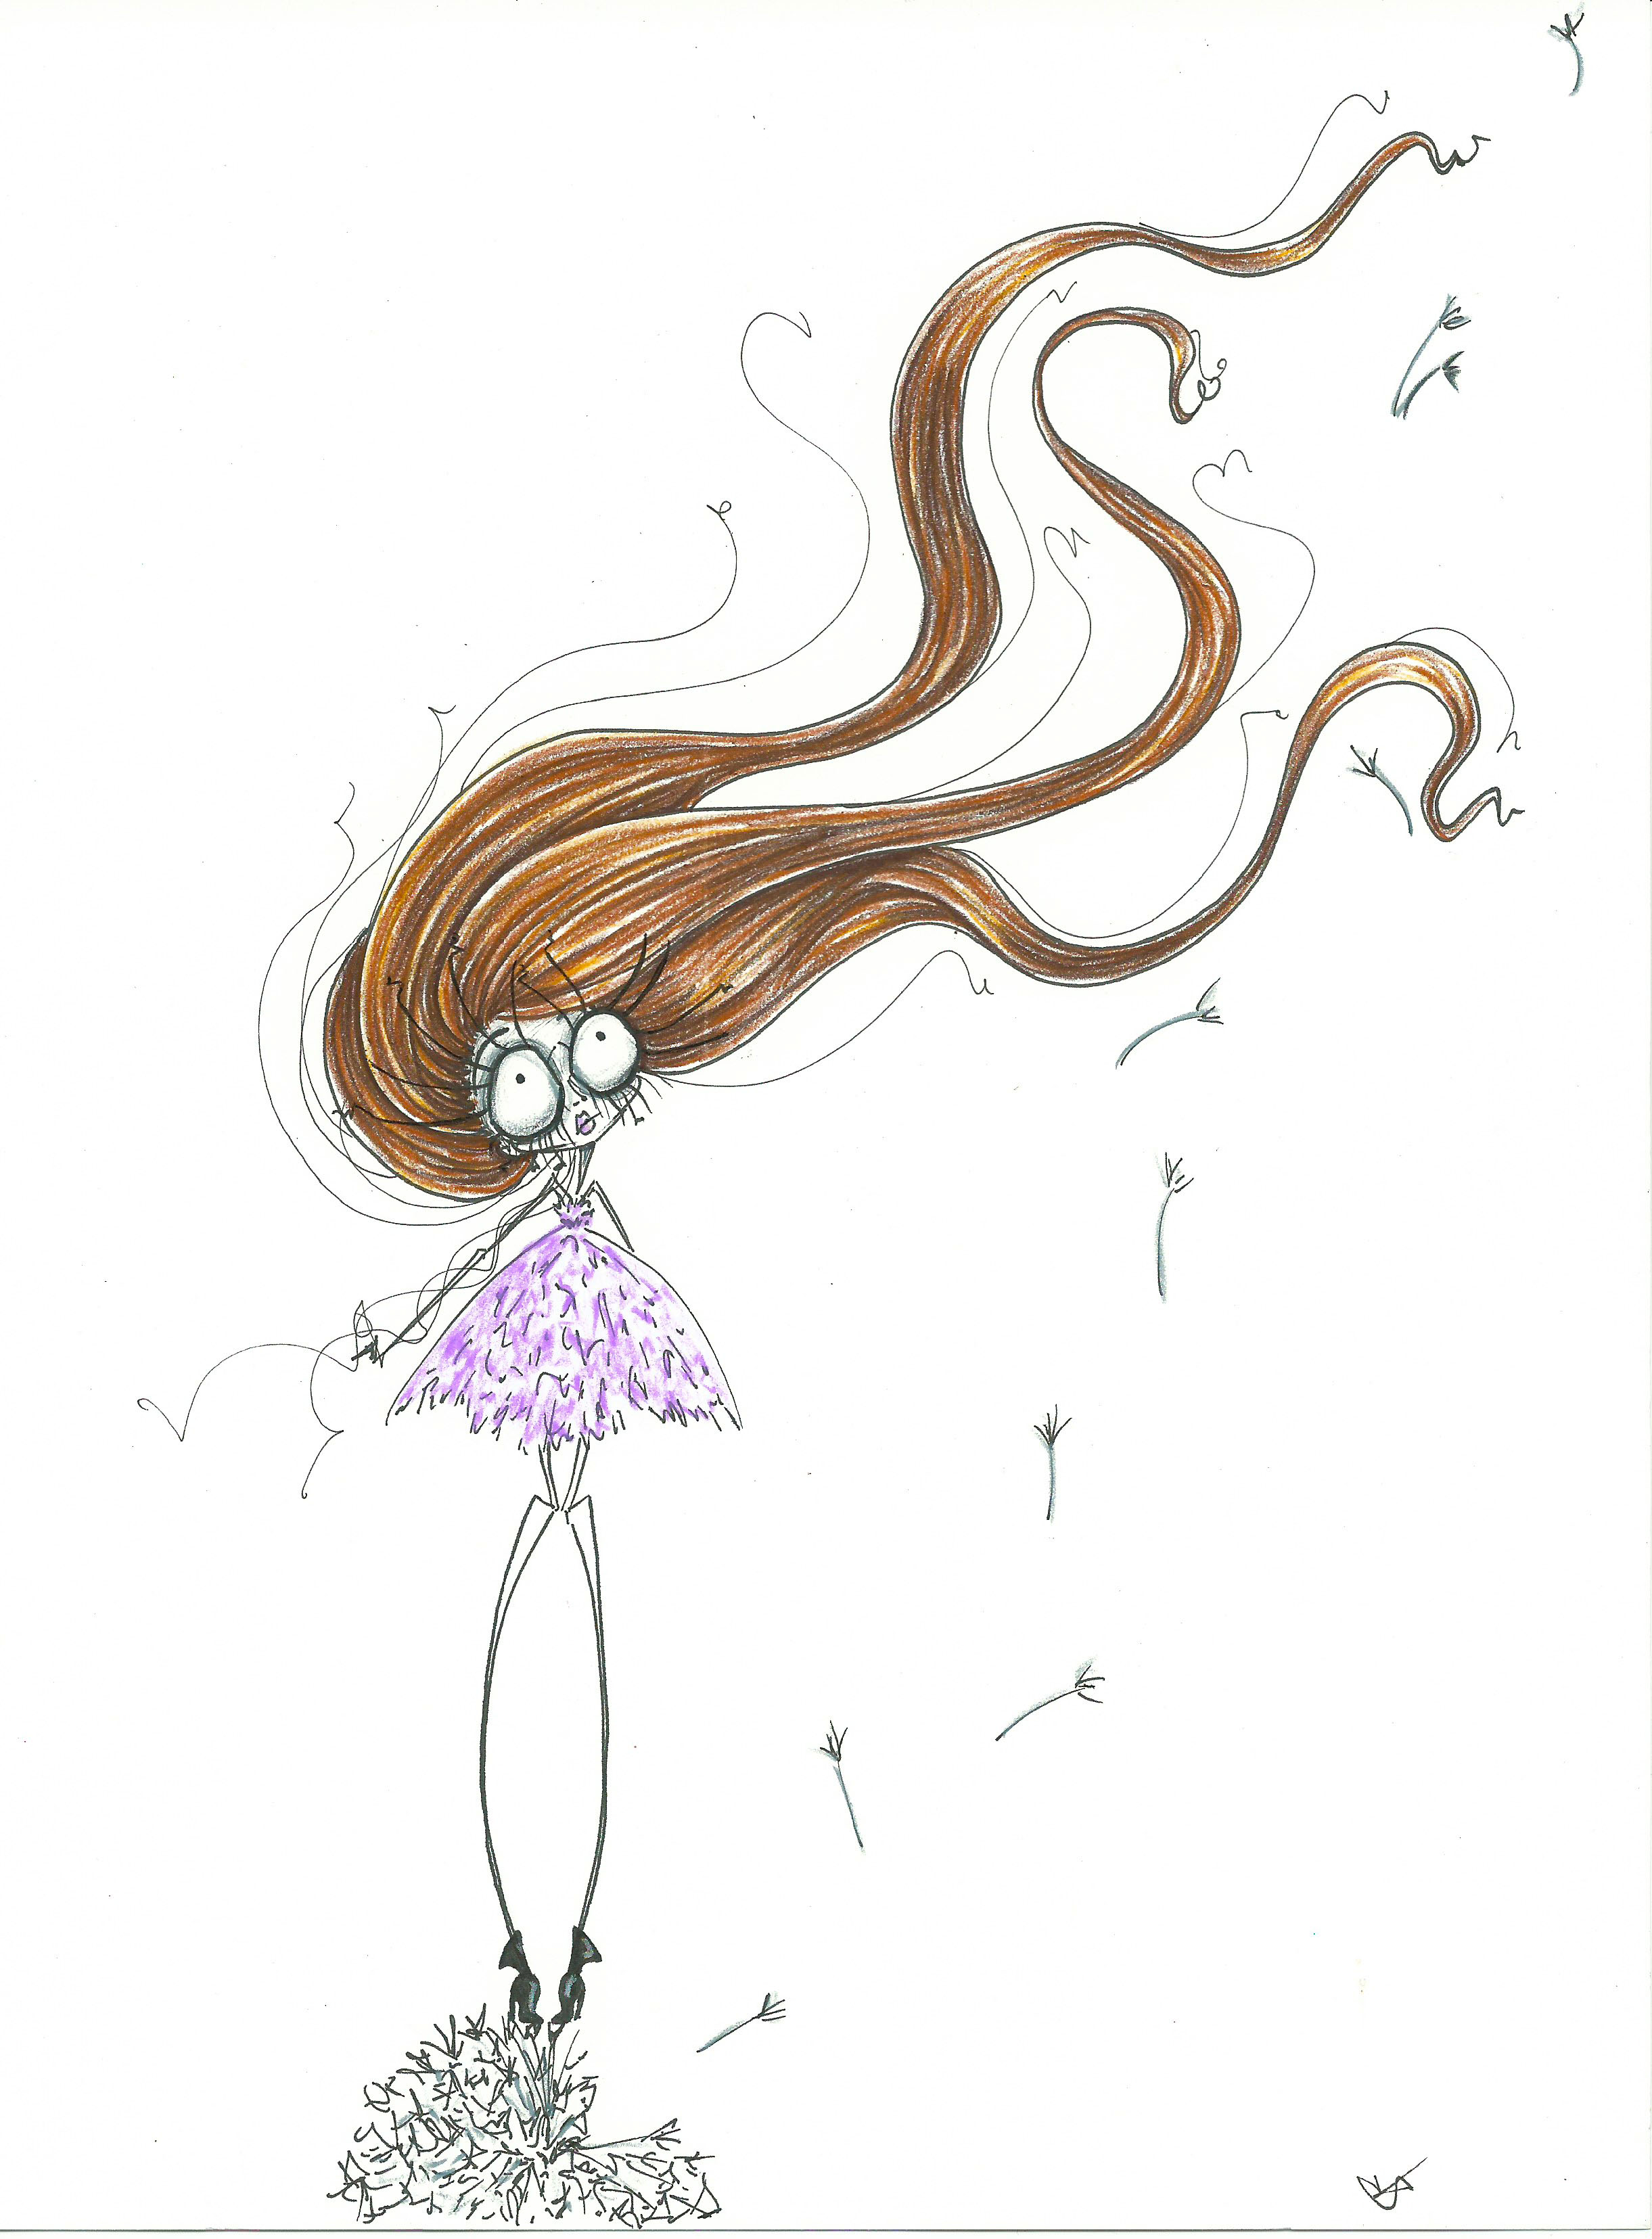 dandelion wishes girl art print illustration